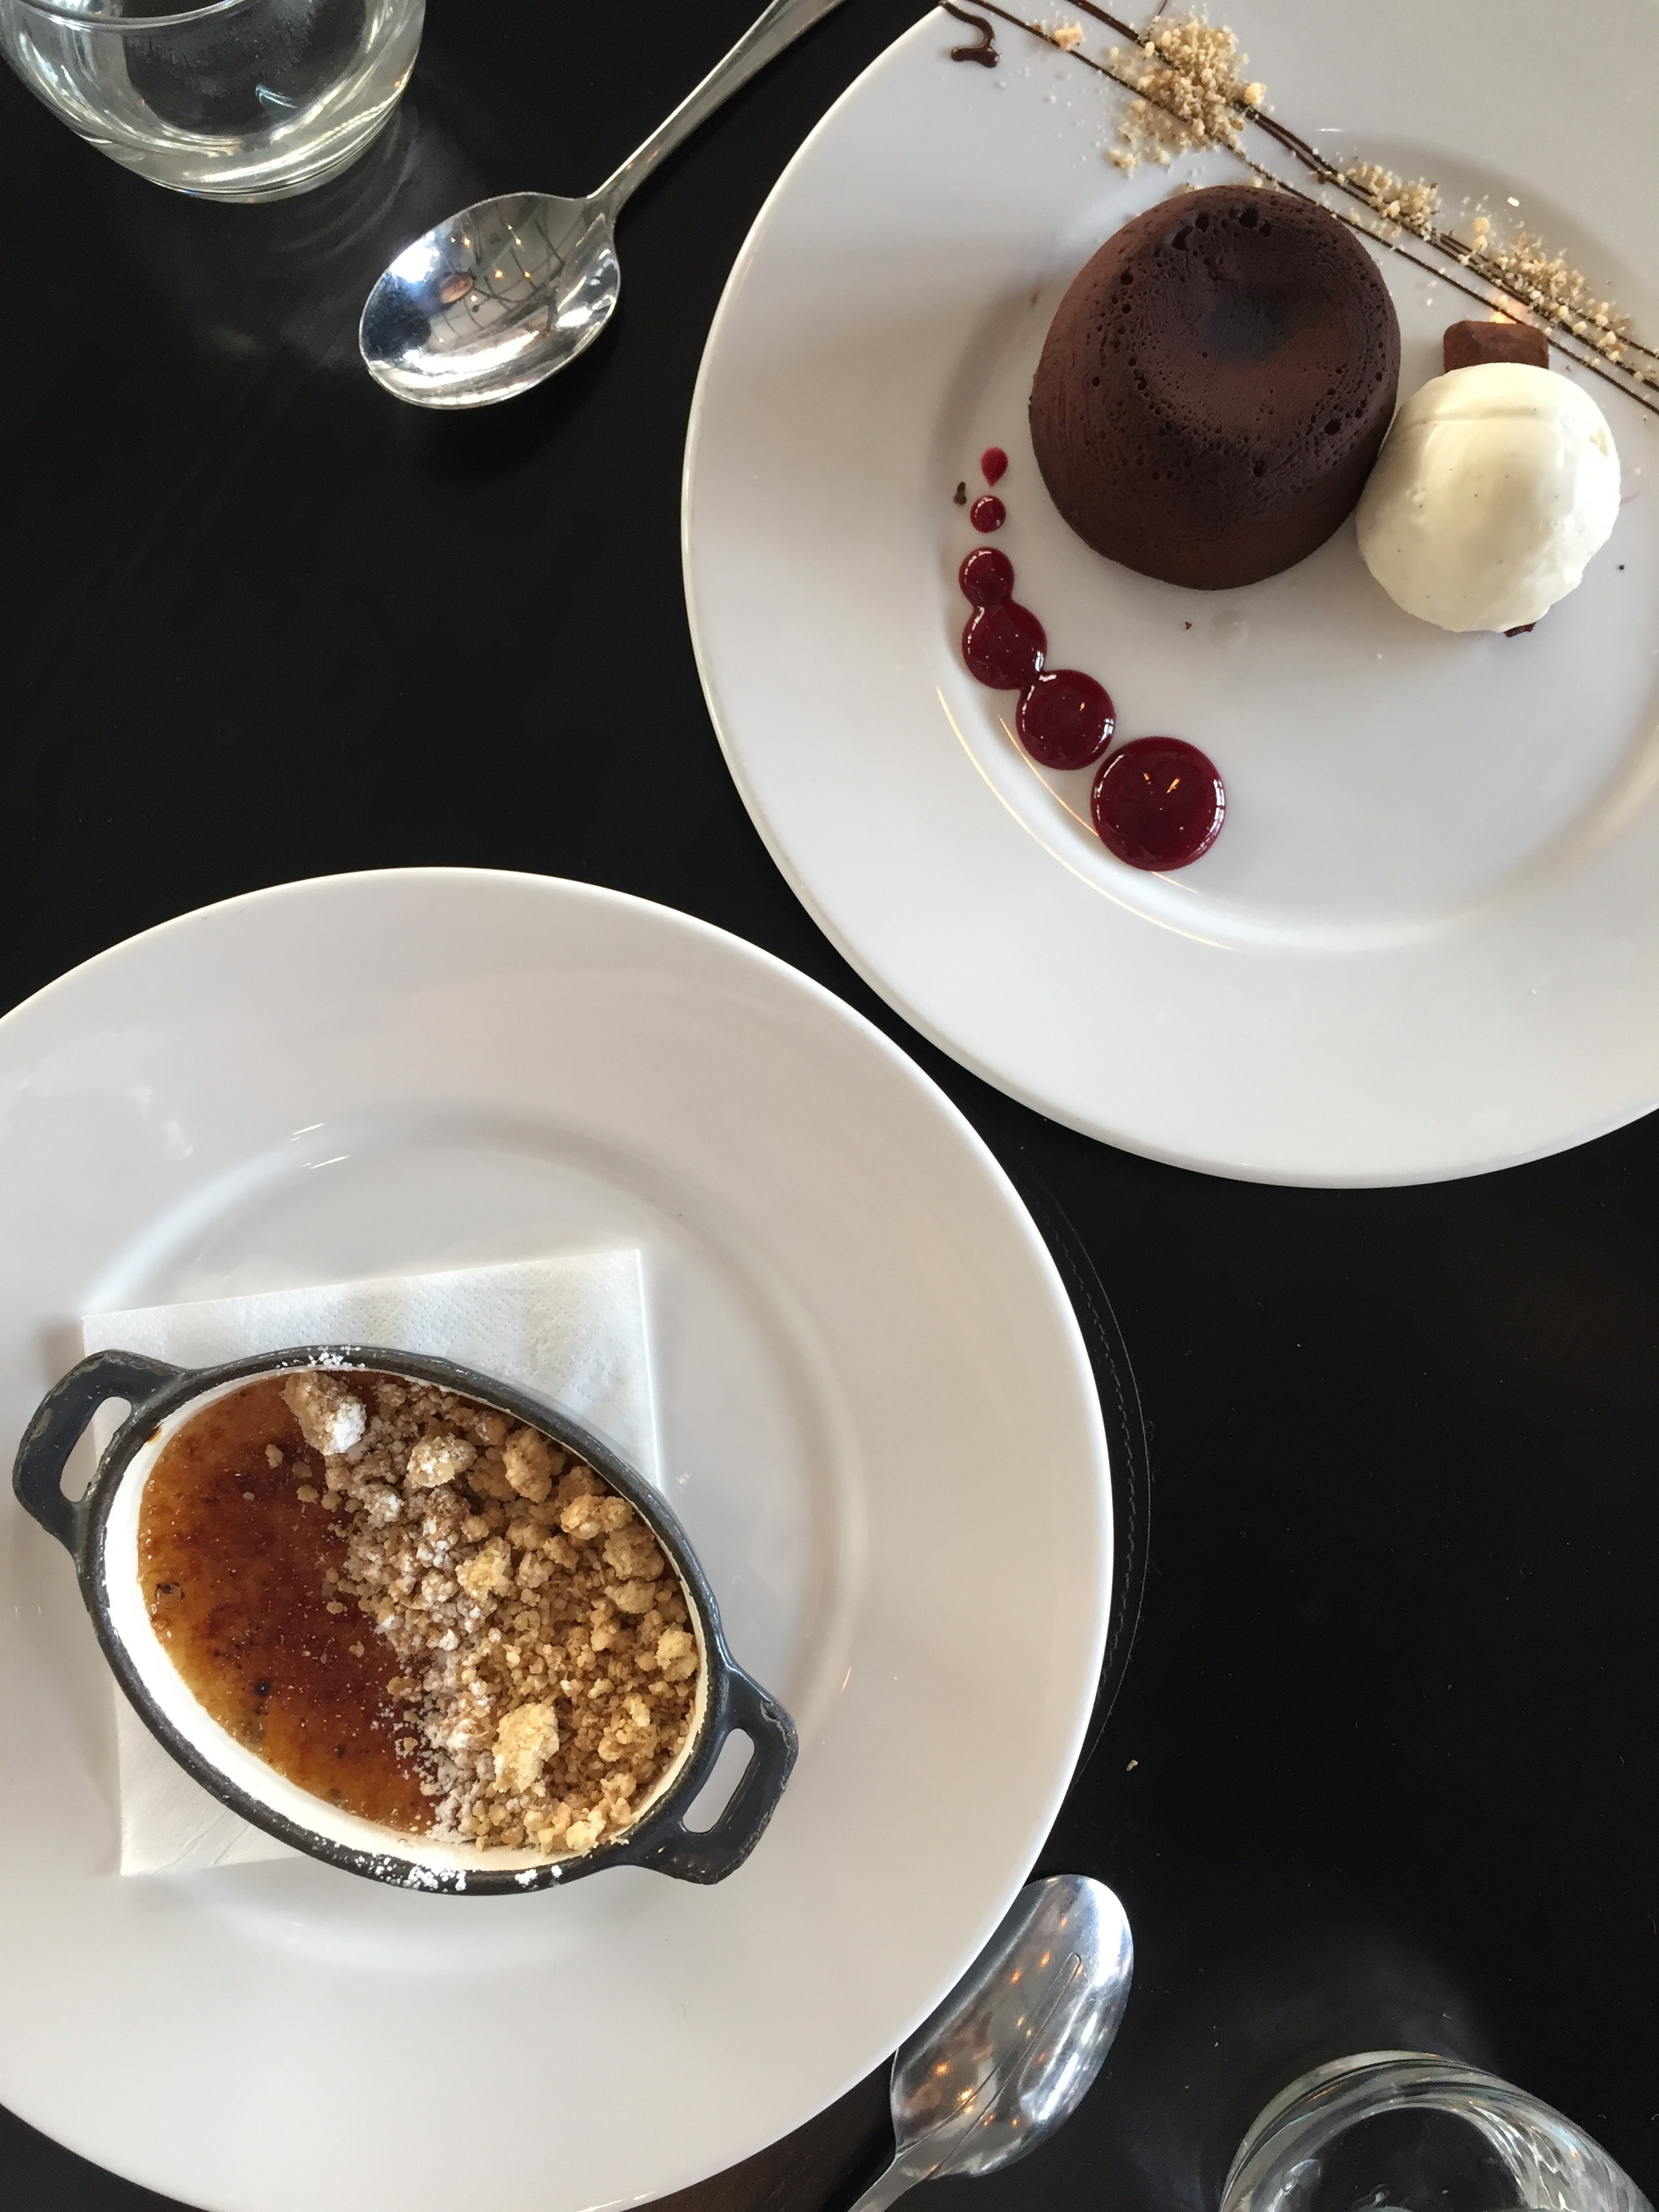 (Top) Chocolate Fondant (Bottom) Creme Brûlée with sweetened apples beneath